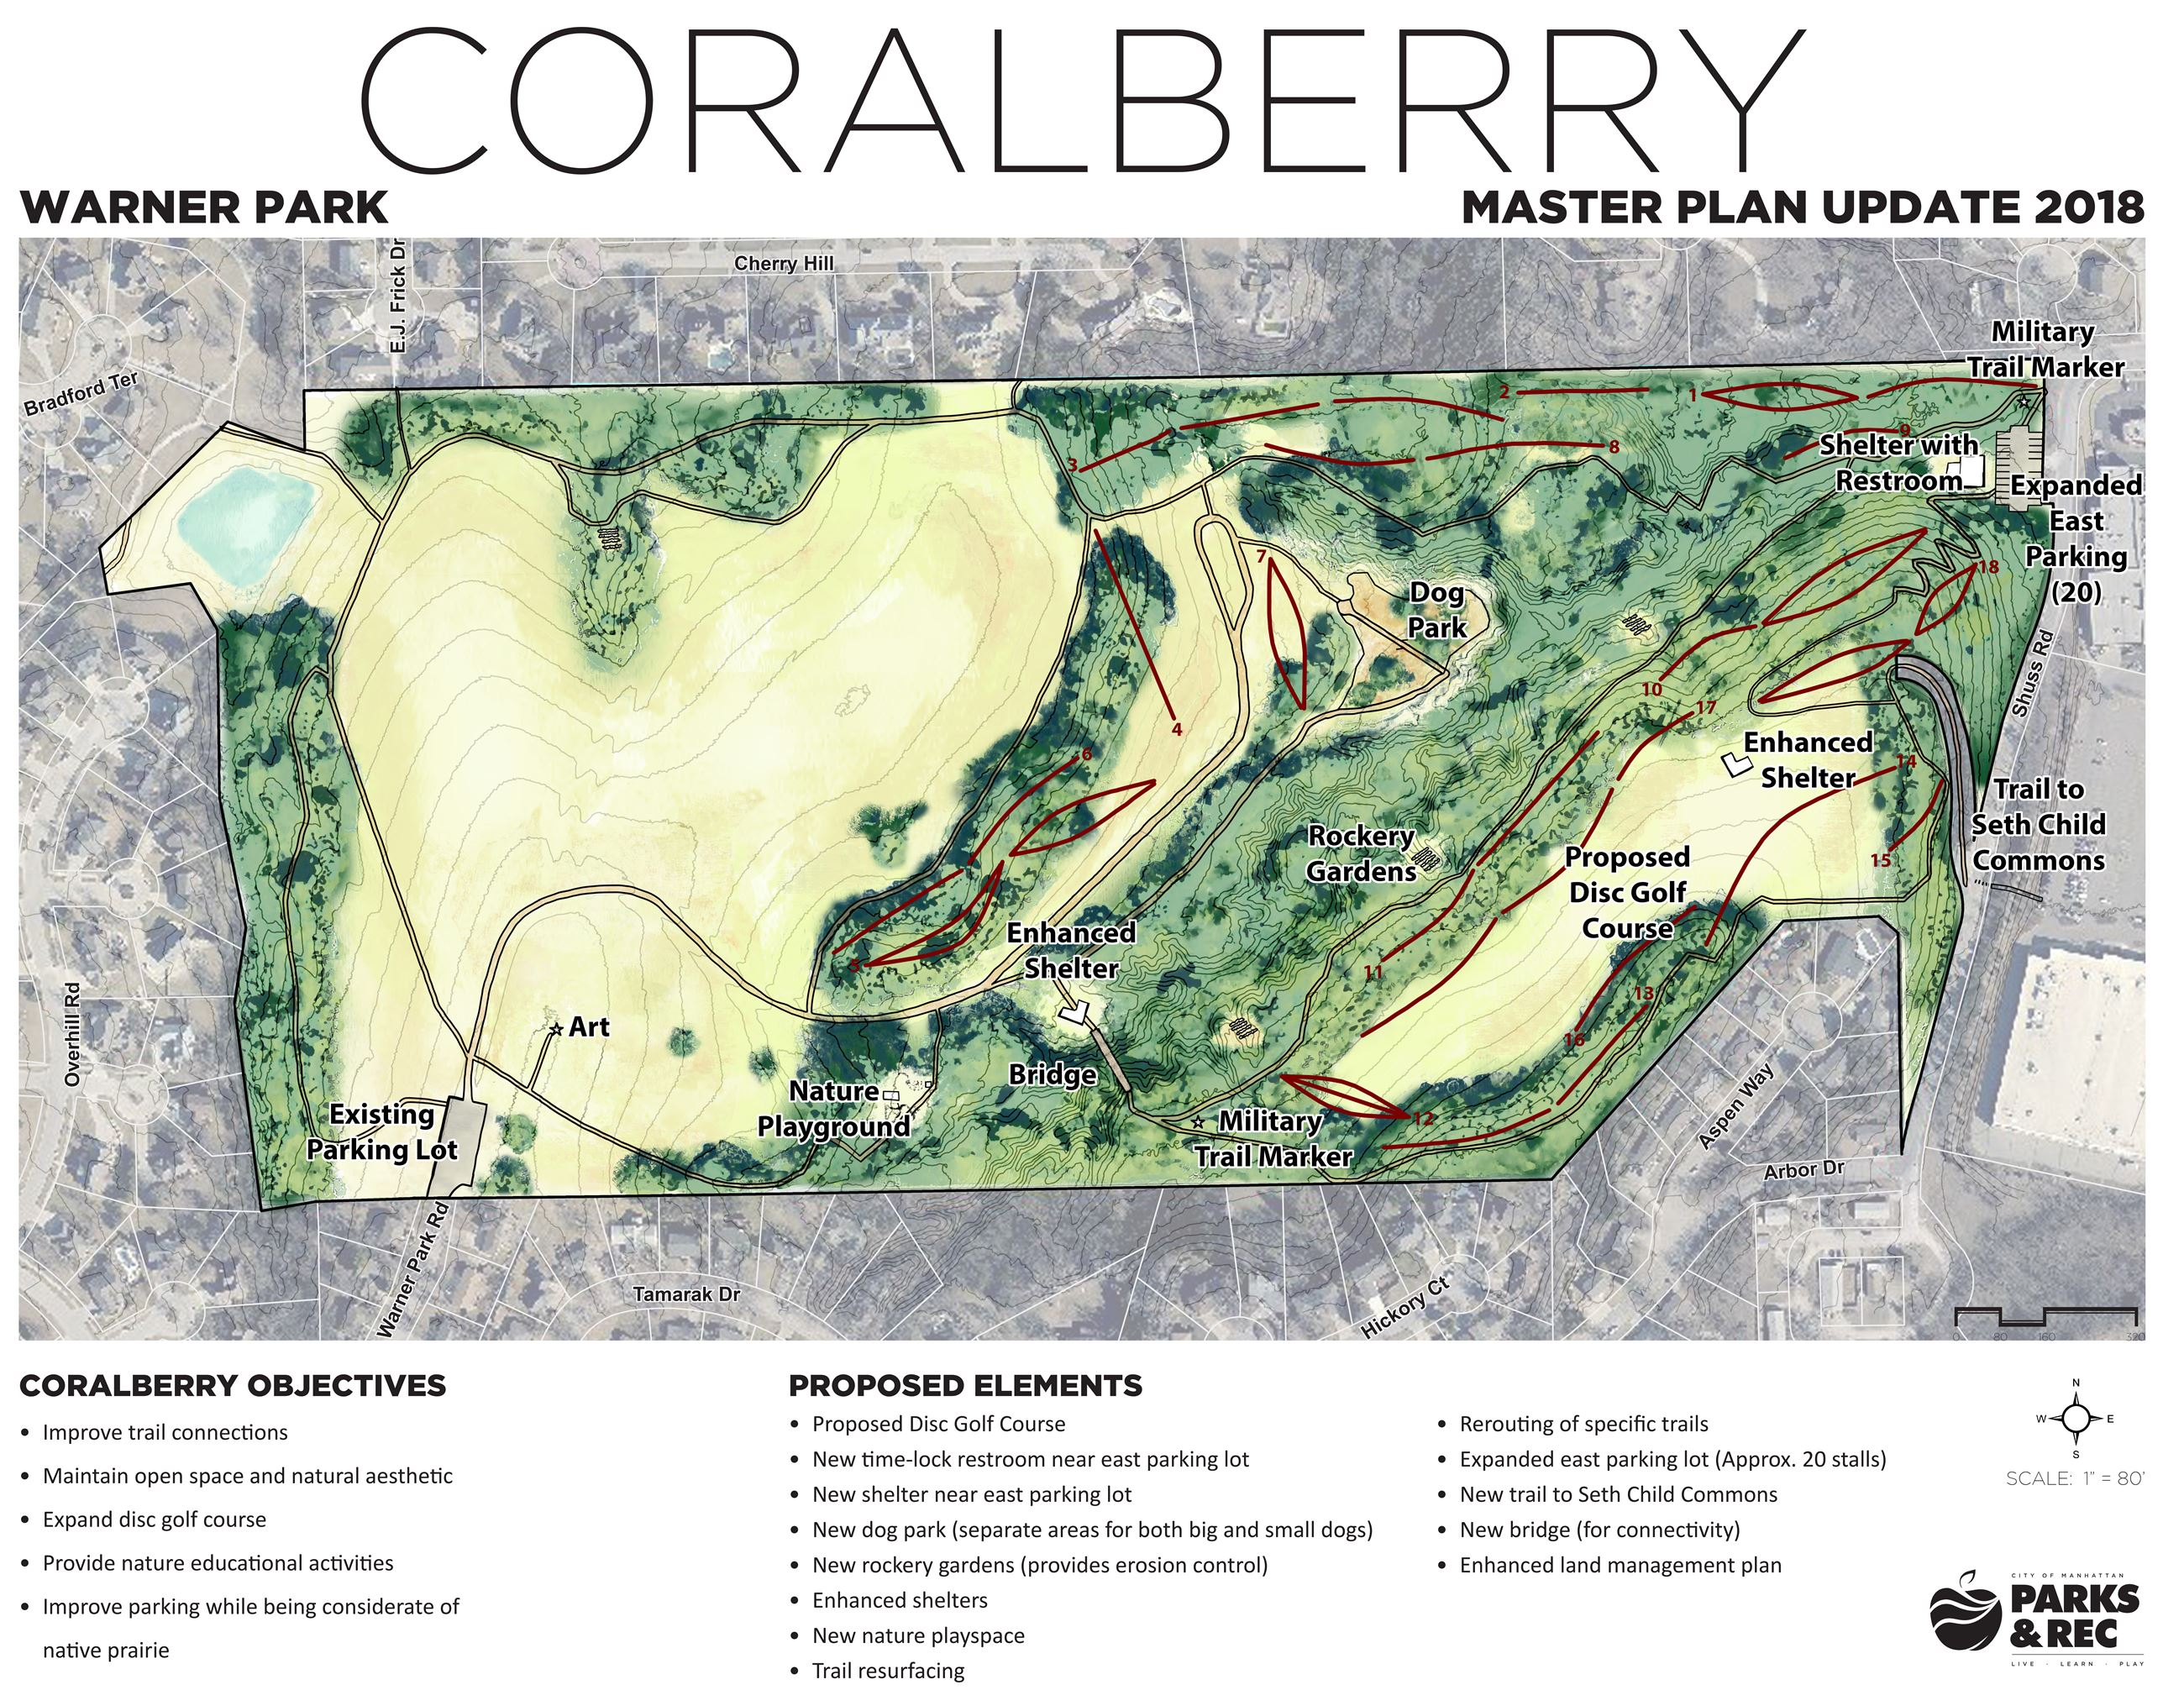 WarnerPark_Coralberry_Poster